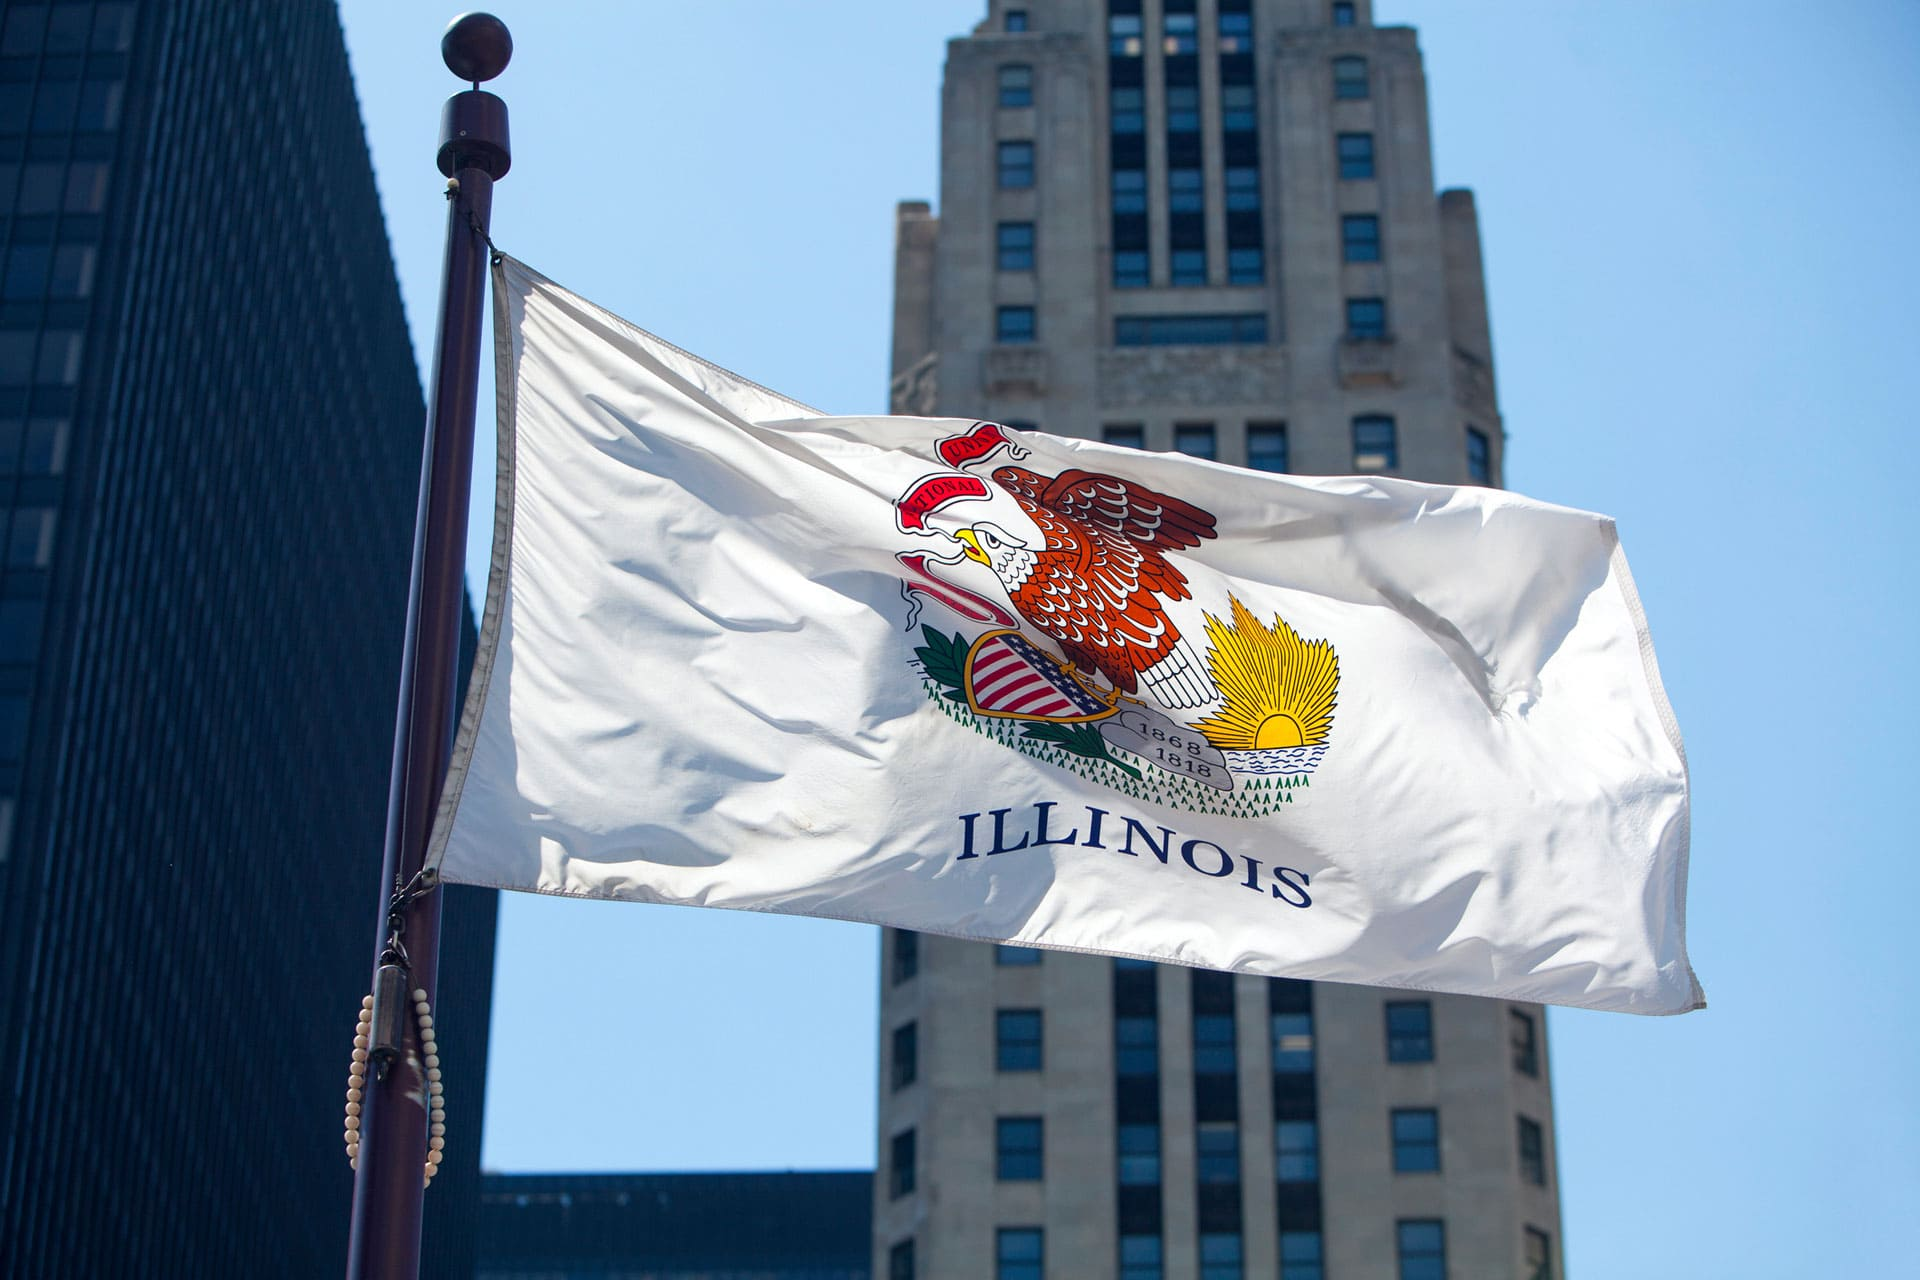 Illinois-flag_detail